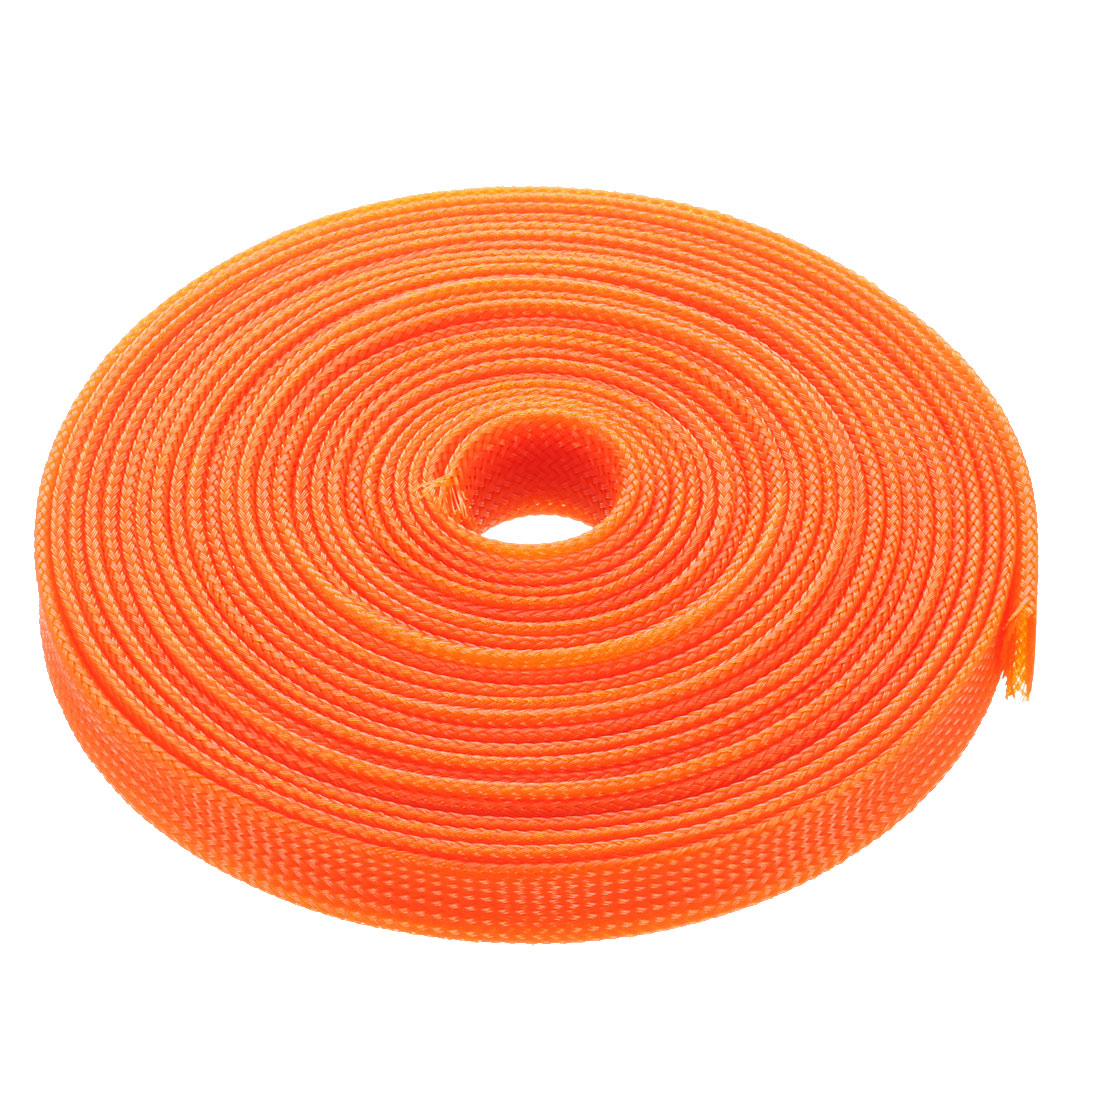 12mm Dia Tight Braided PET Expandable Sleeving Cable Wrap Sheath Orange 16Ft